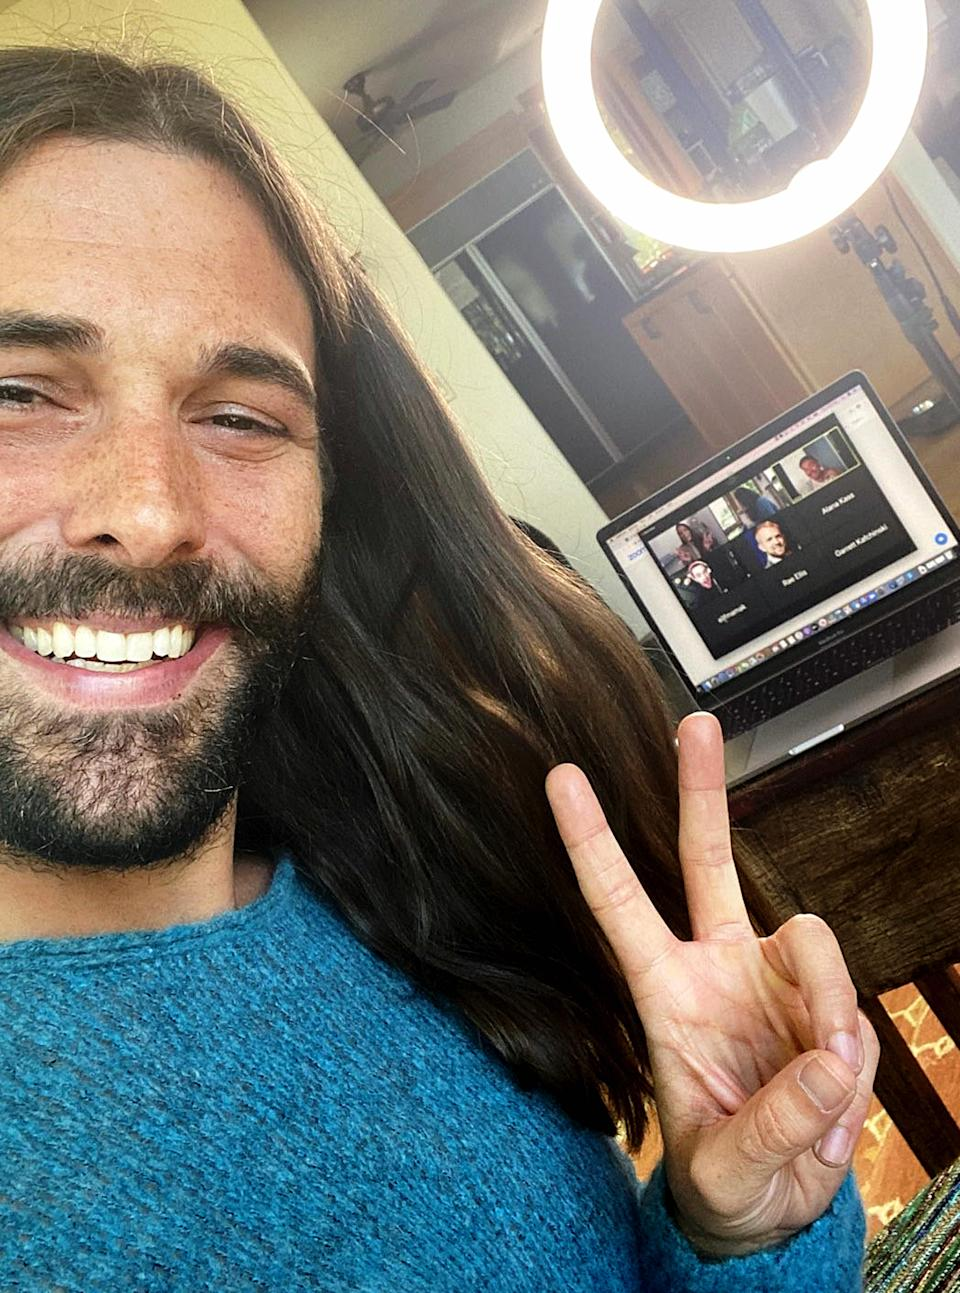 Jonathan Van Ness at a recent live stream highlighting the LGBTQ response to COVID-19. (GLAAD2020/Getty Images for GLAAD)